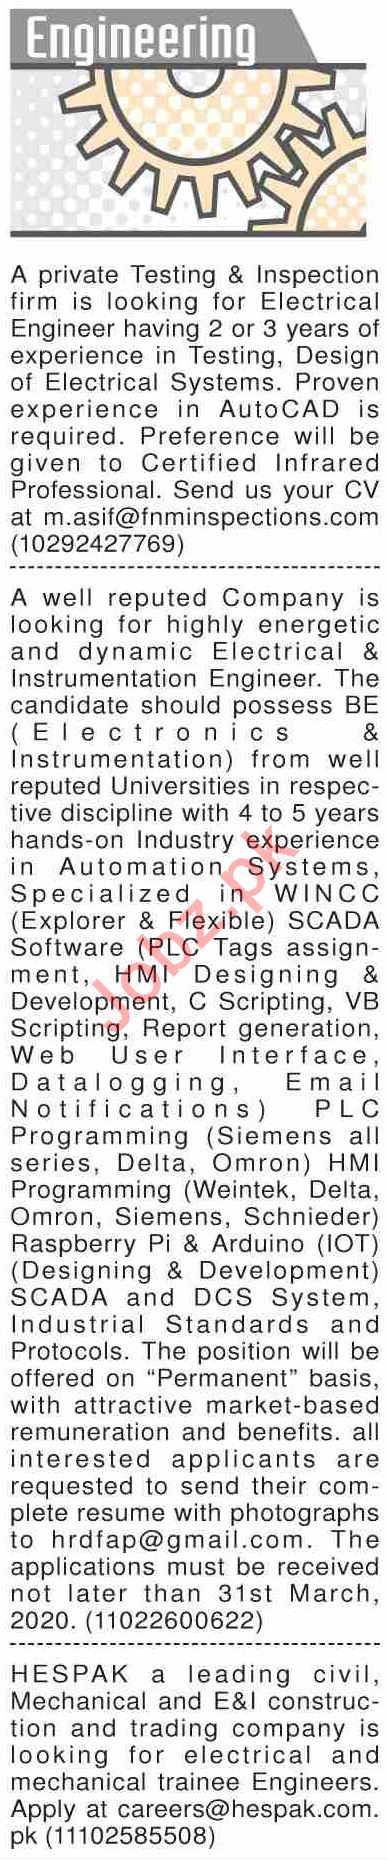 Dawn Sunday Classified Ads 22nd March 2020 for Engineering